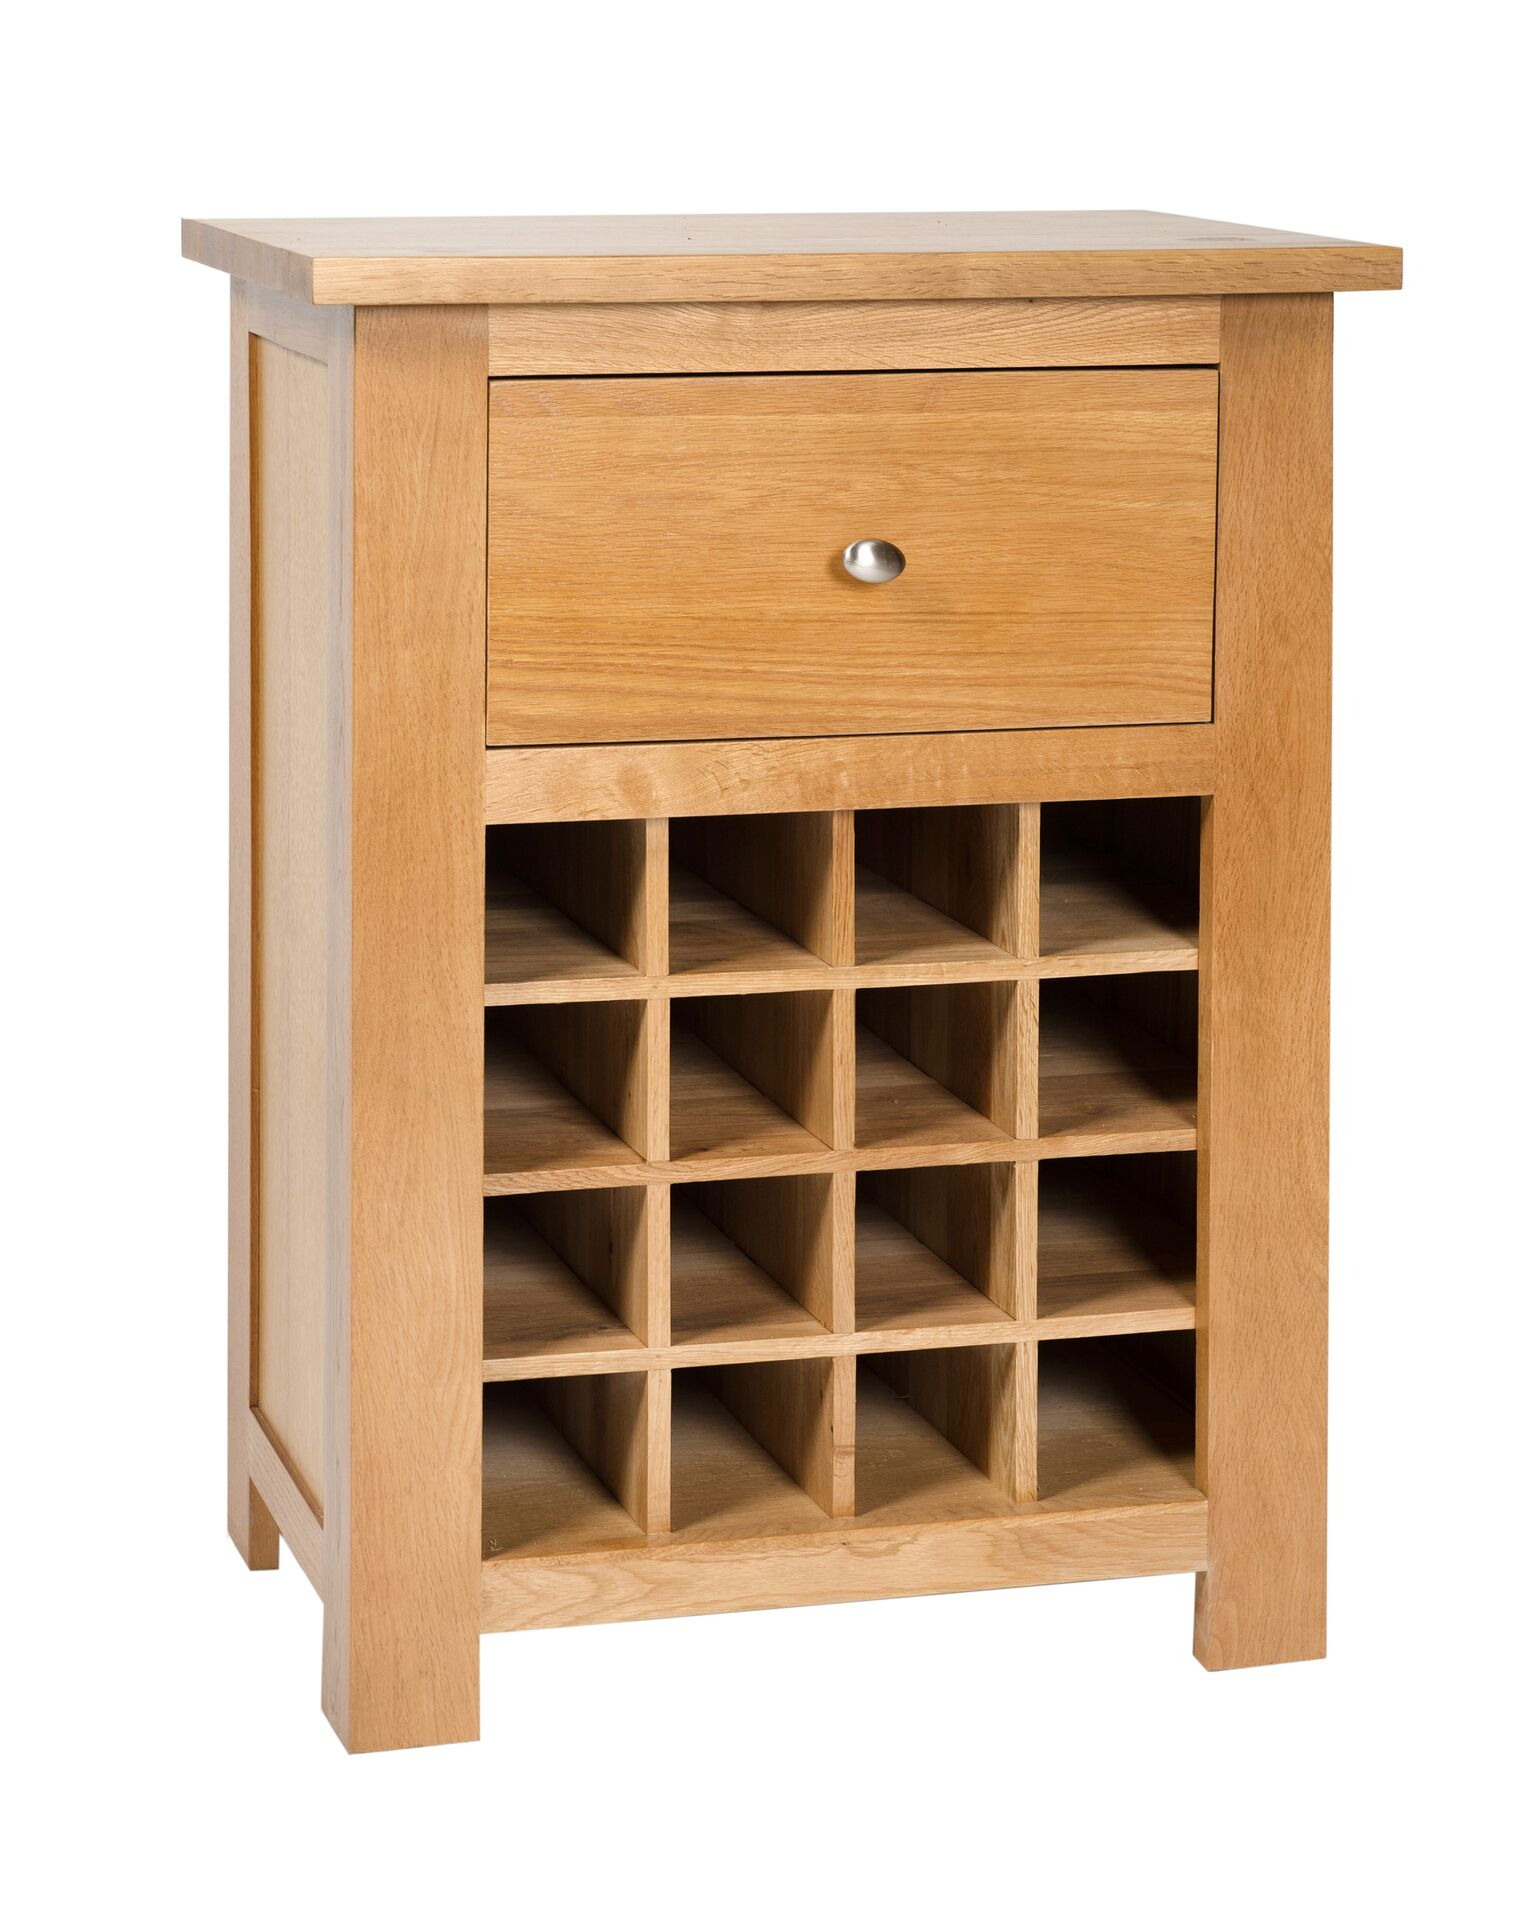 So Oak Wine Rack With Drawer Country Furniture Barn